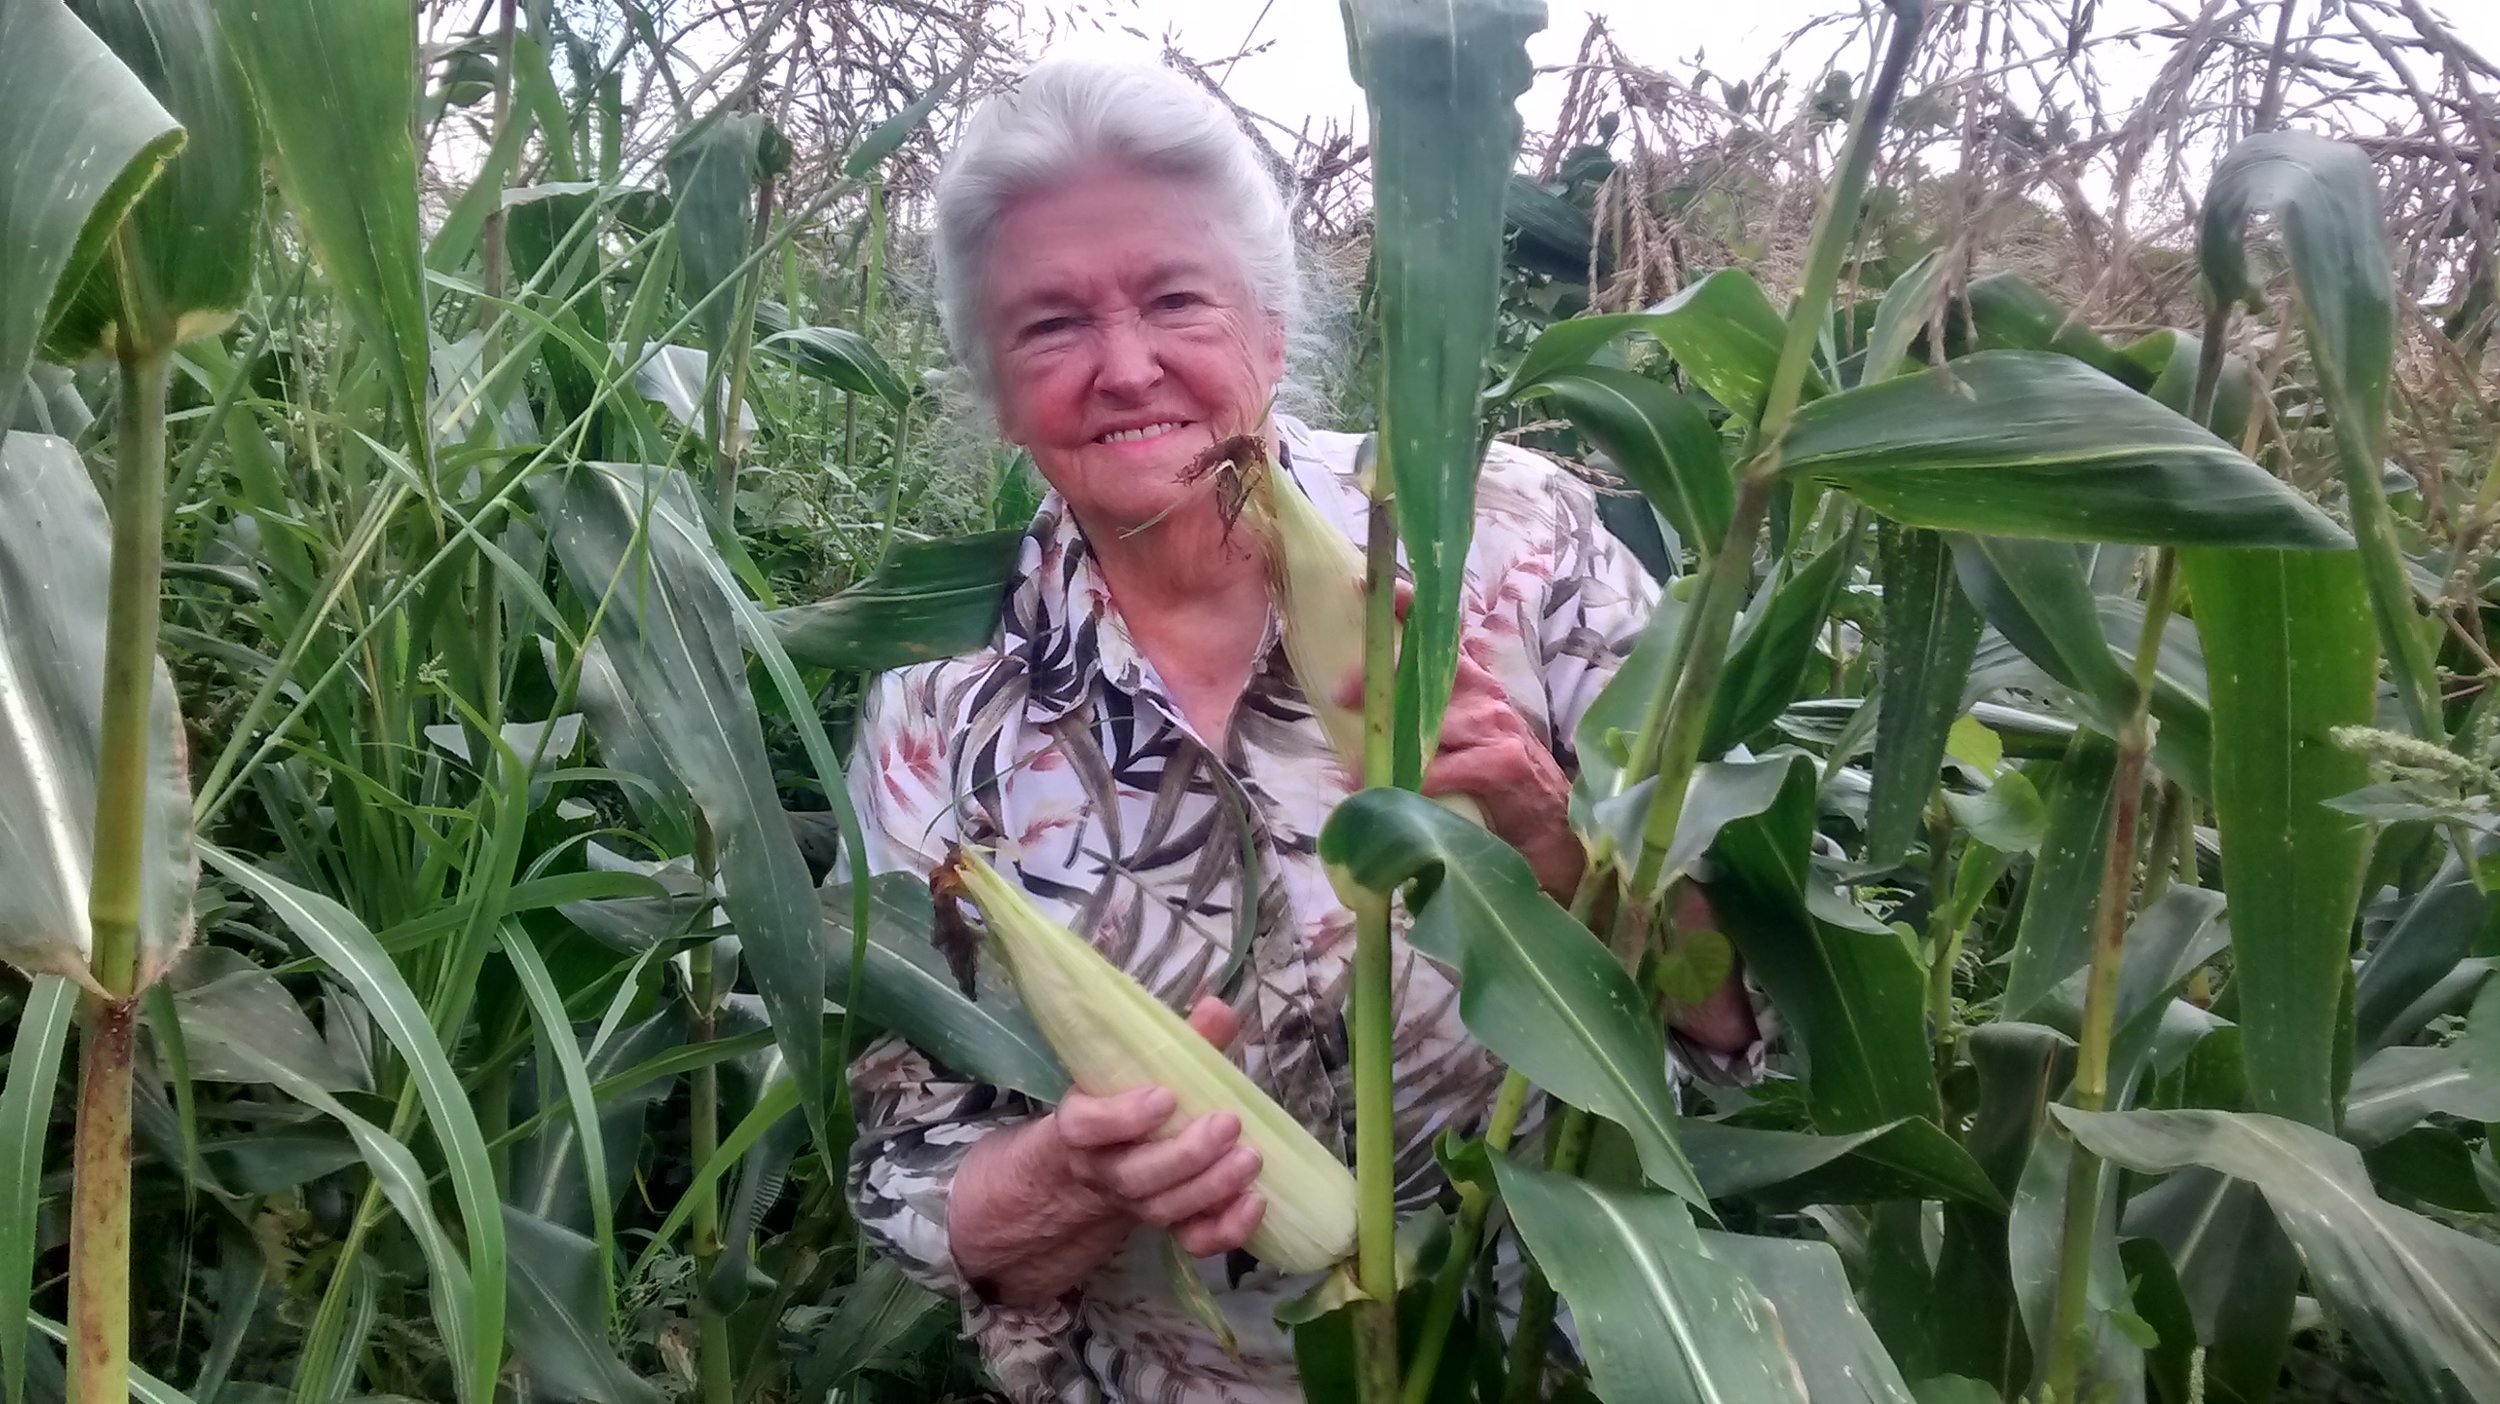 mommy picking corn 7-24-15.jpg